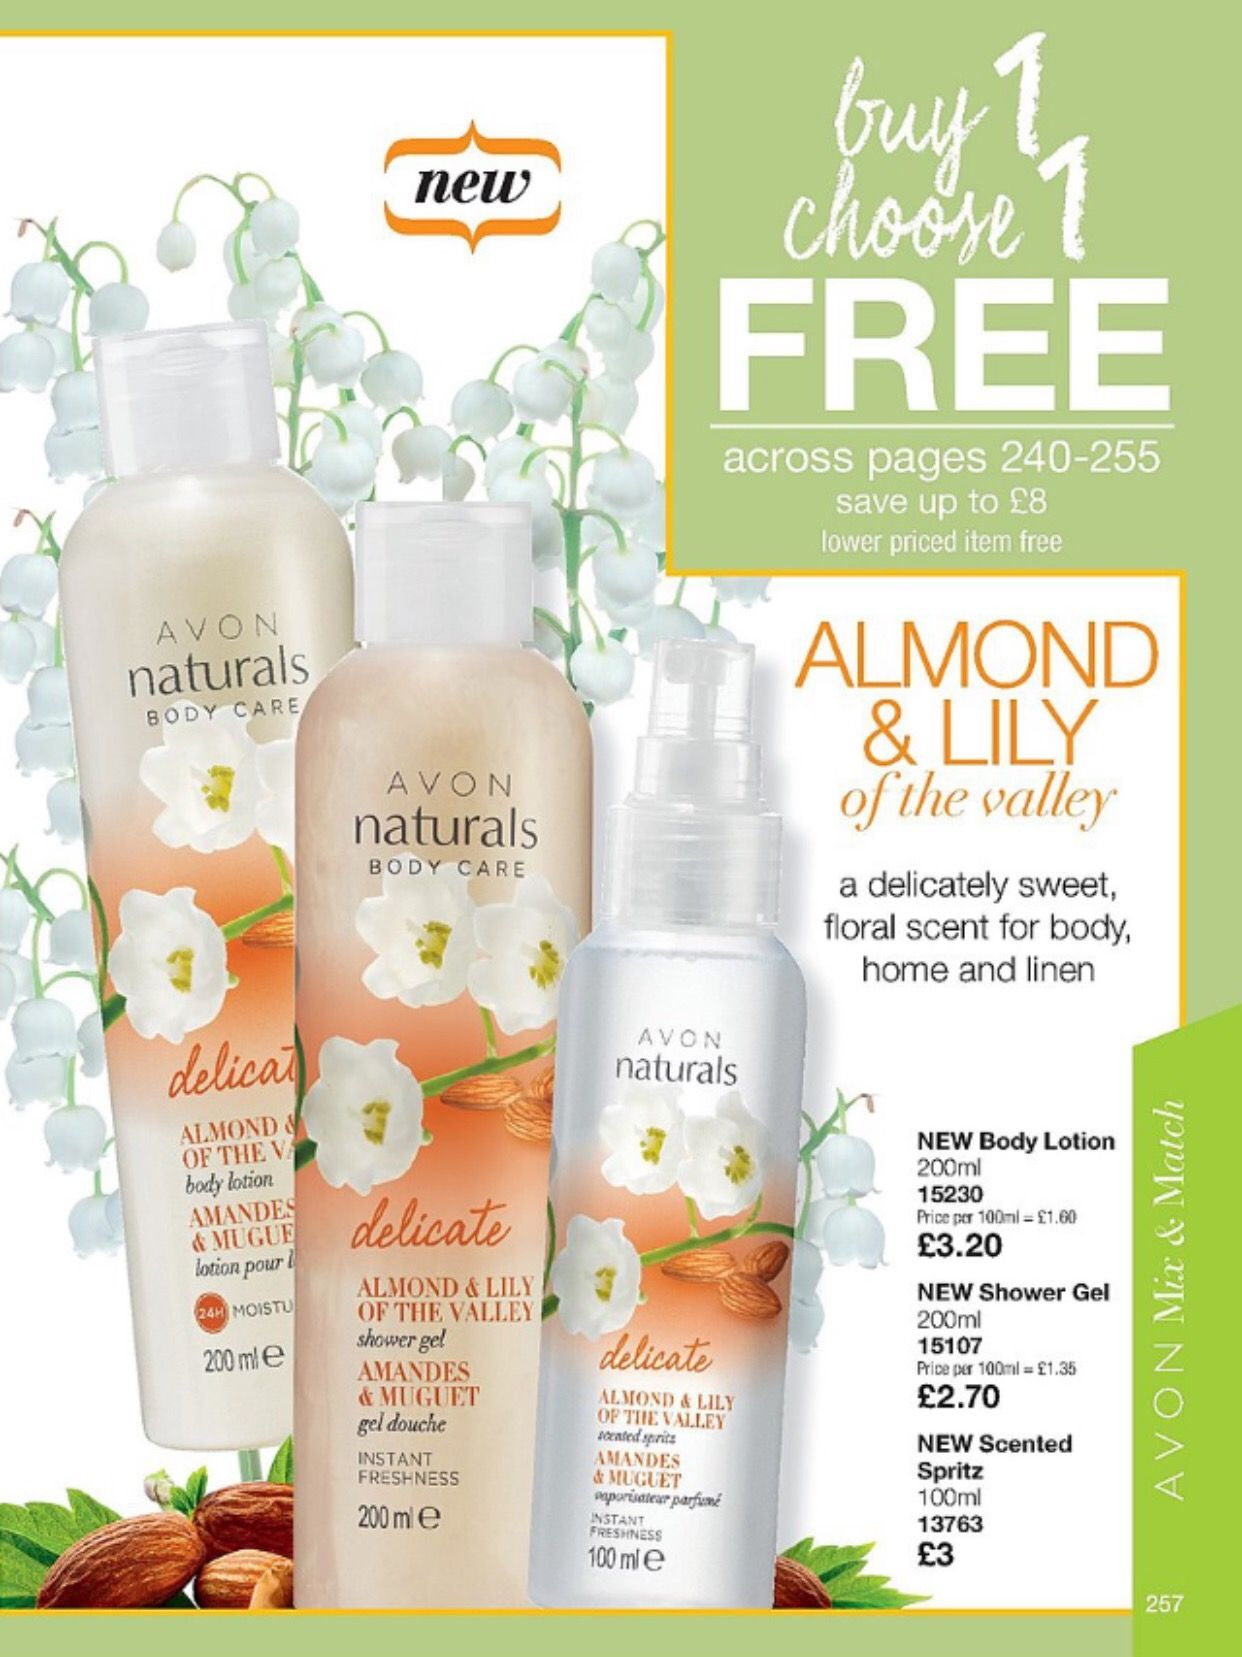 Available to order until 9th January 2017.. contact me at www.mybeautylady.net